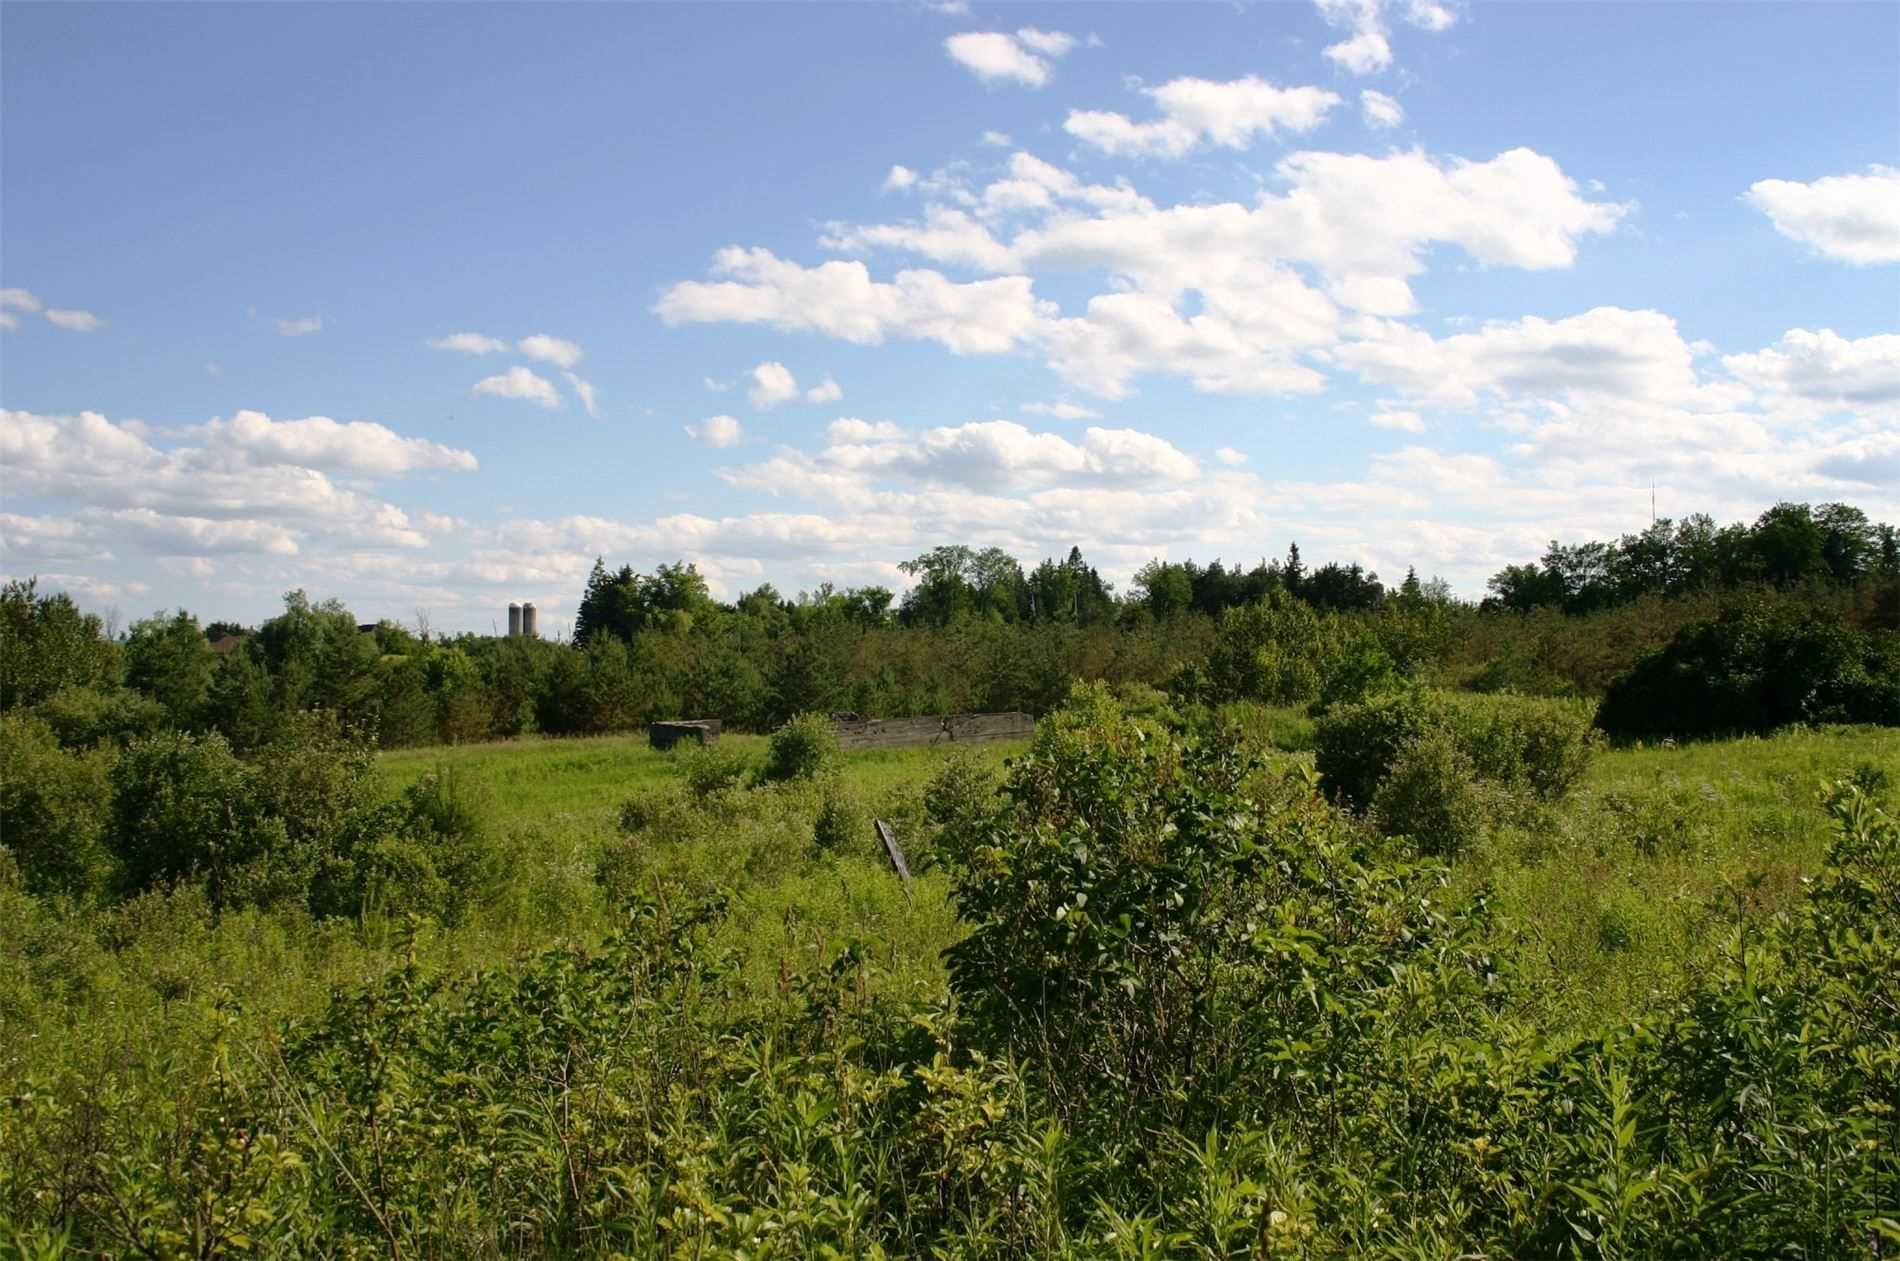 Main Photo: 475547 County Road 11 in Amaranth: Rural Amaranth Property for sale : MLS®# X4667613